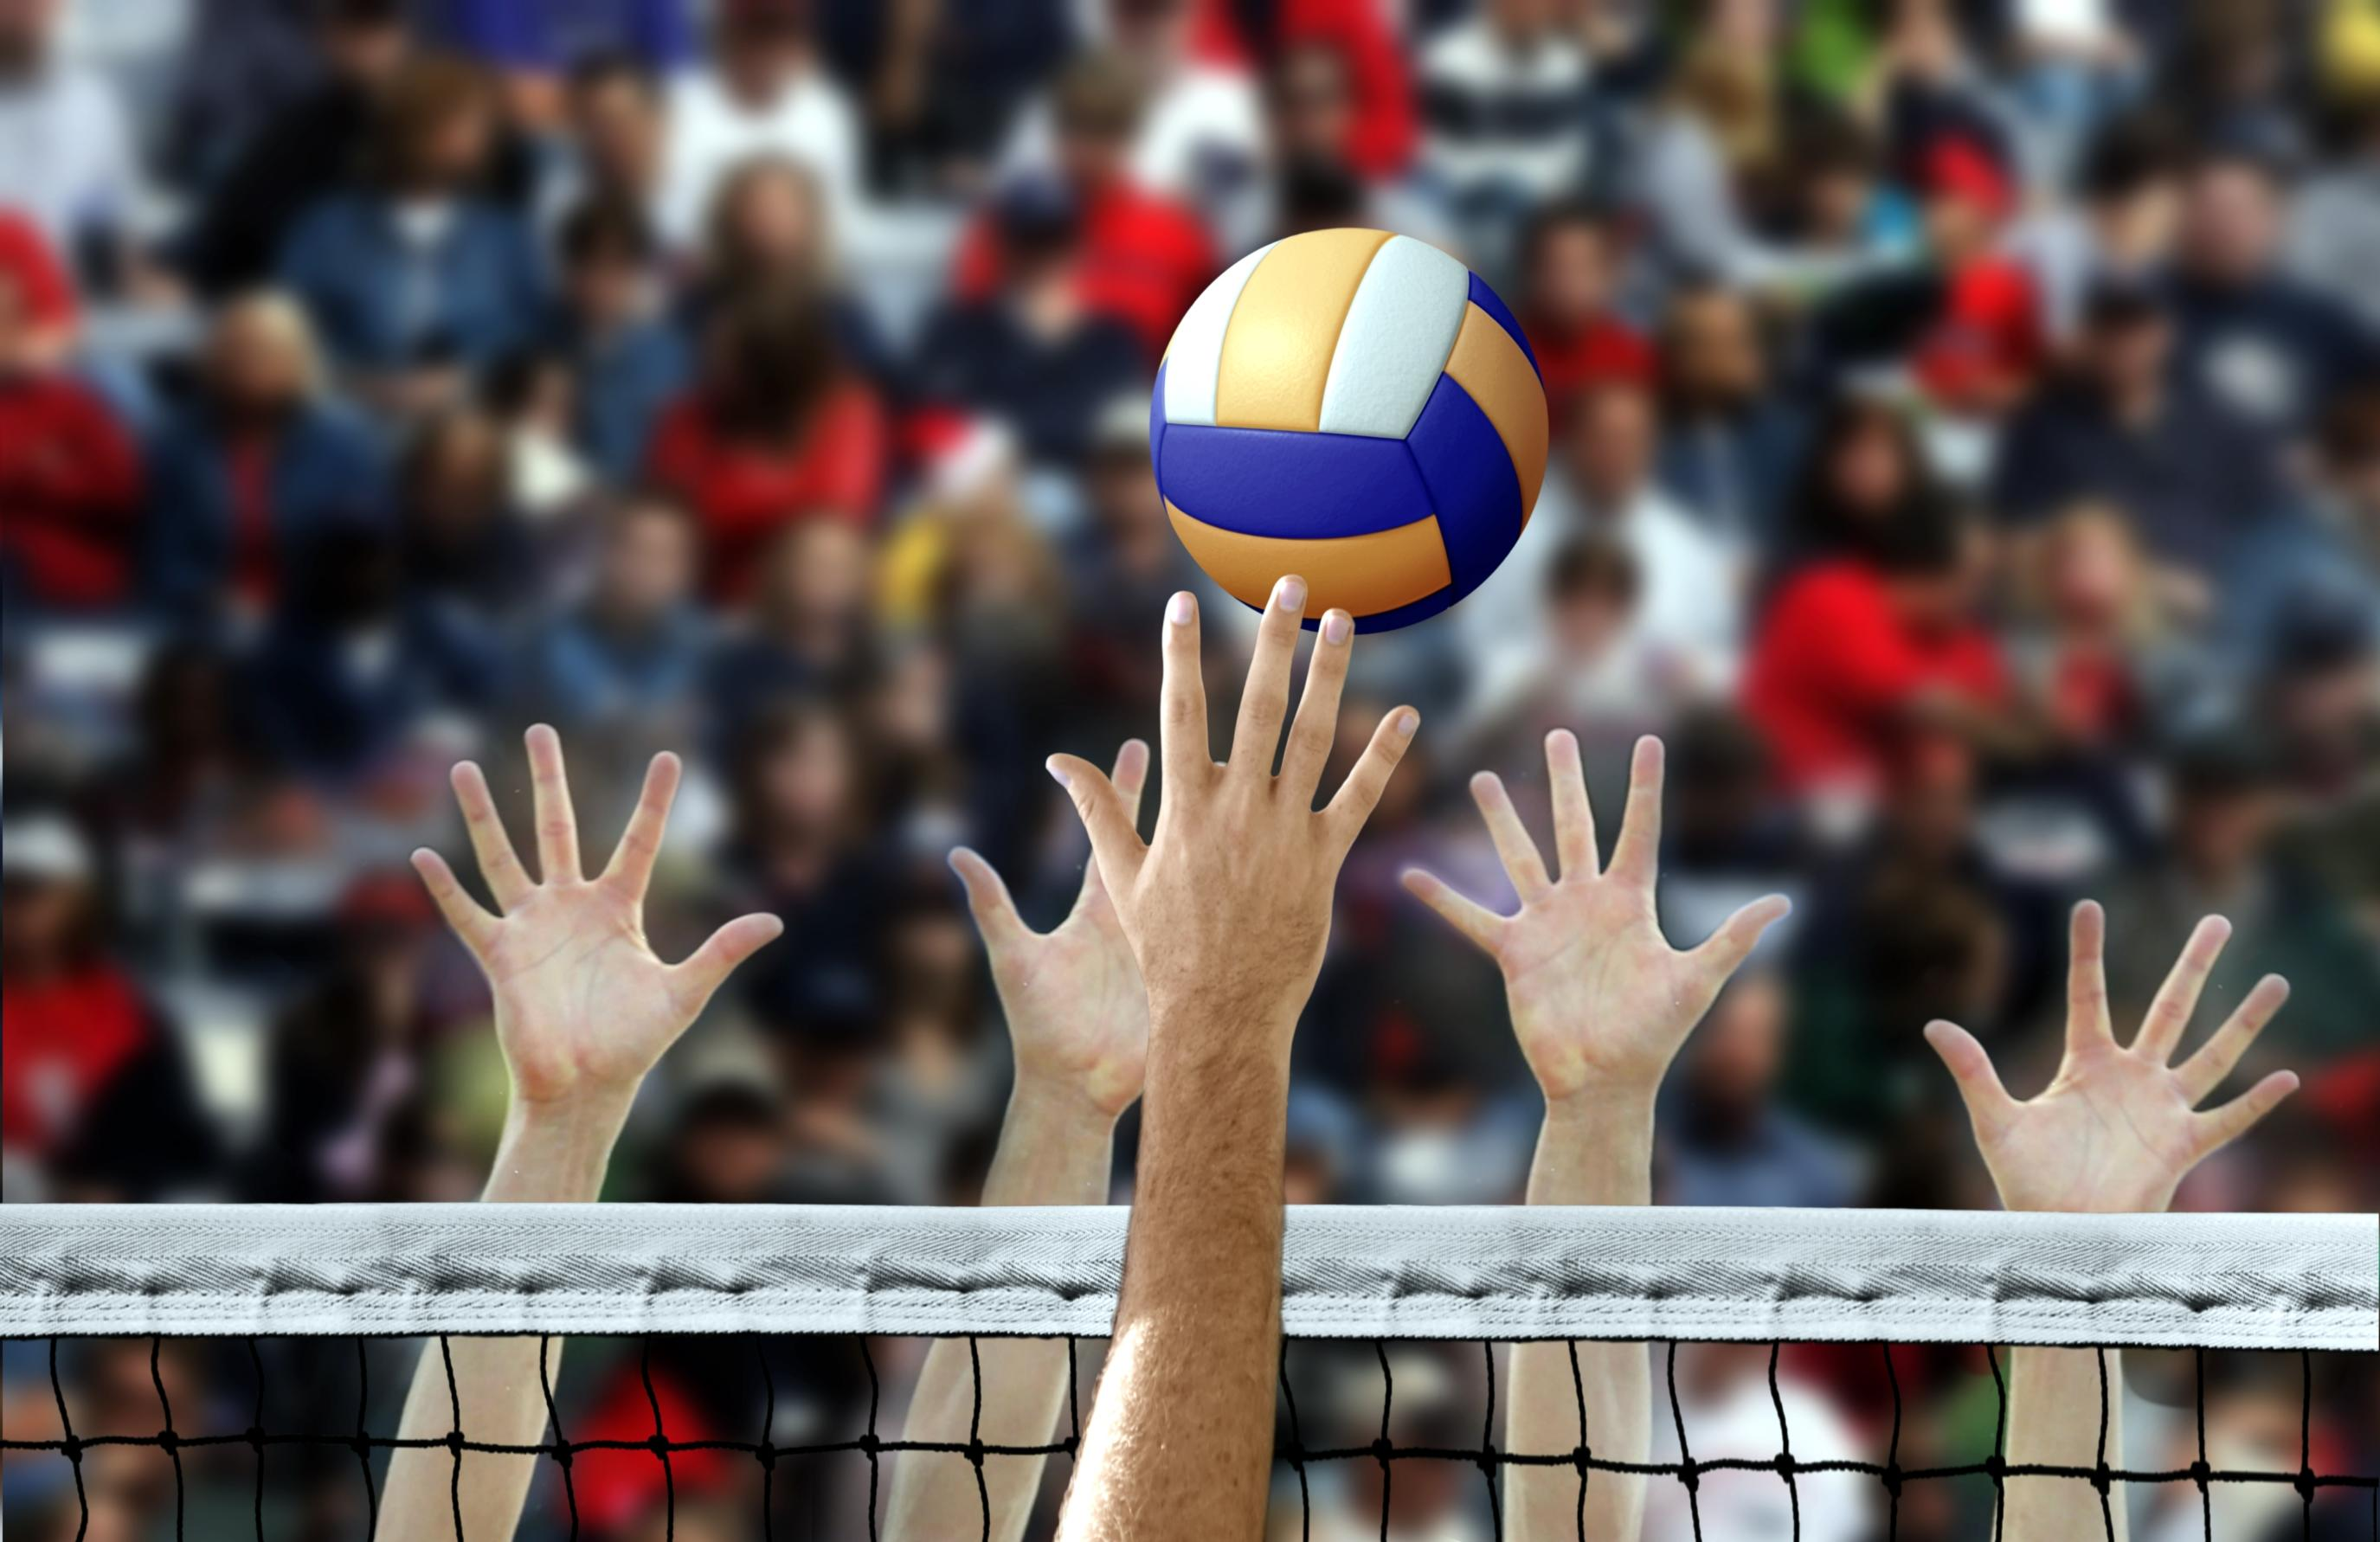 Aau Volleyball Tournament In Florida Postponed